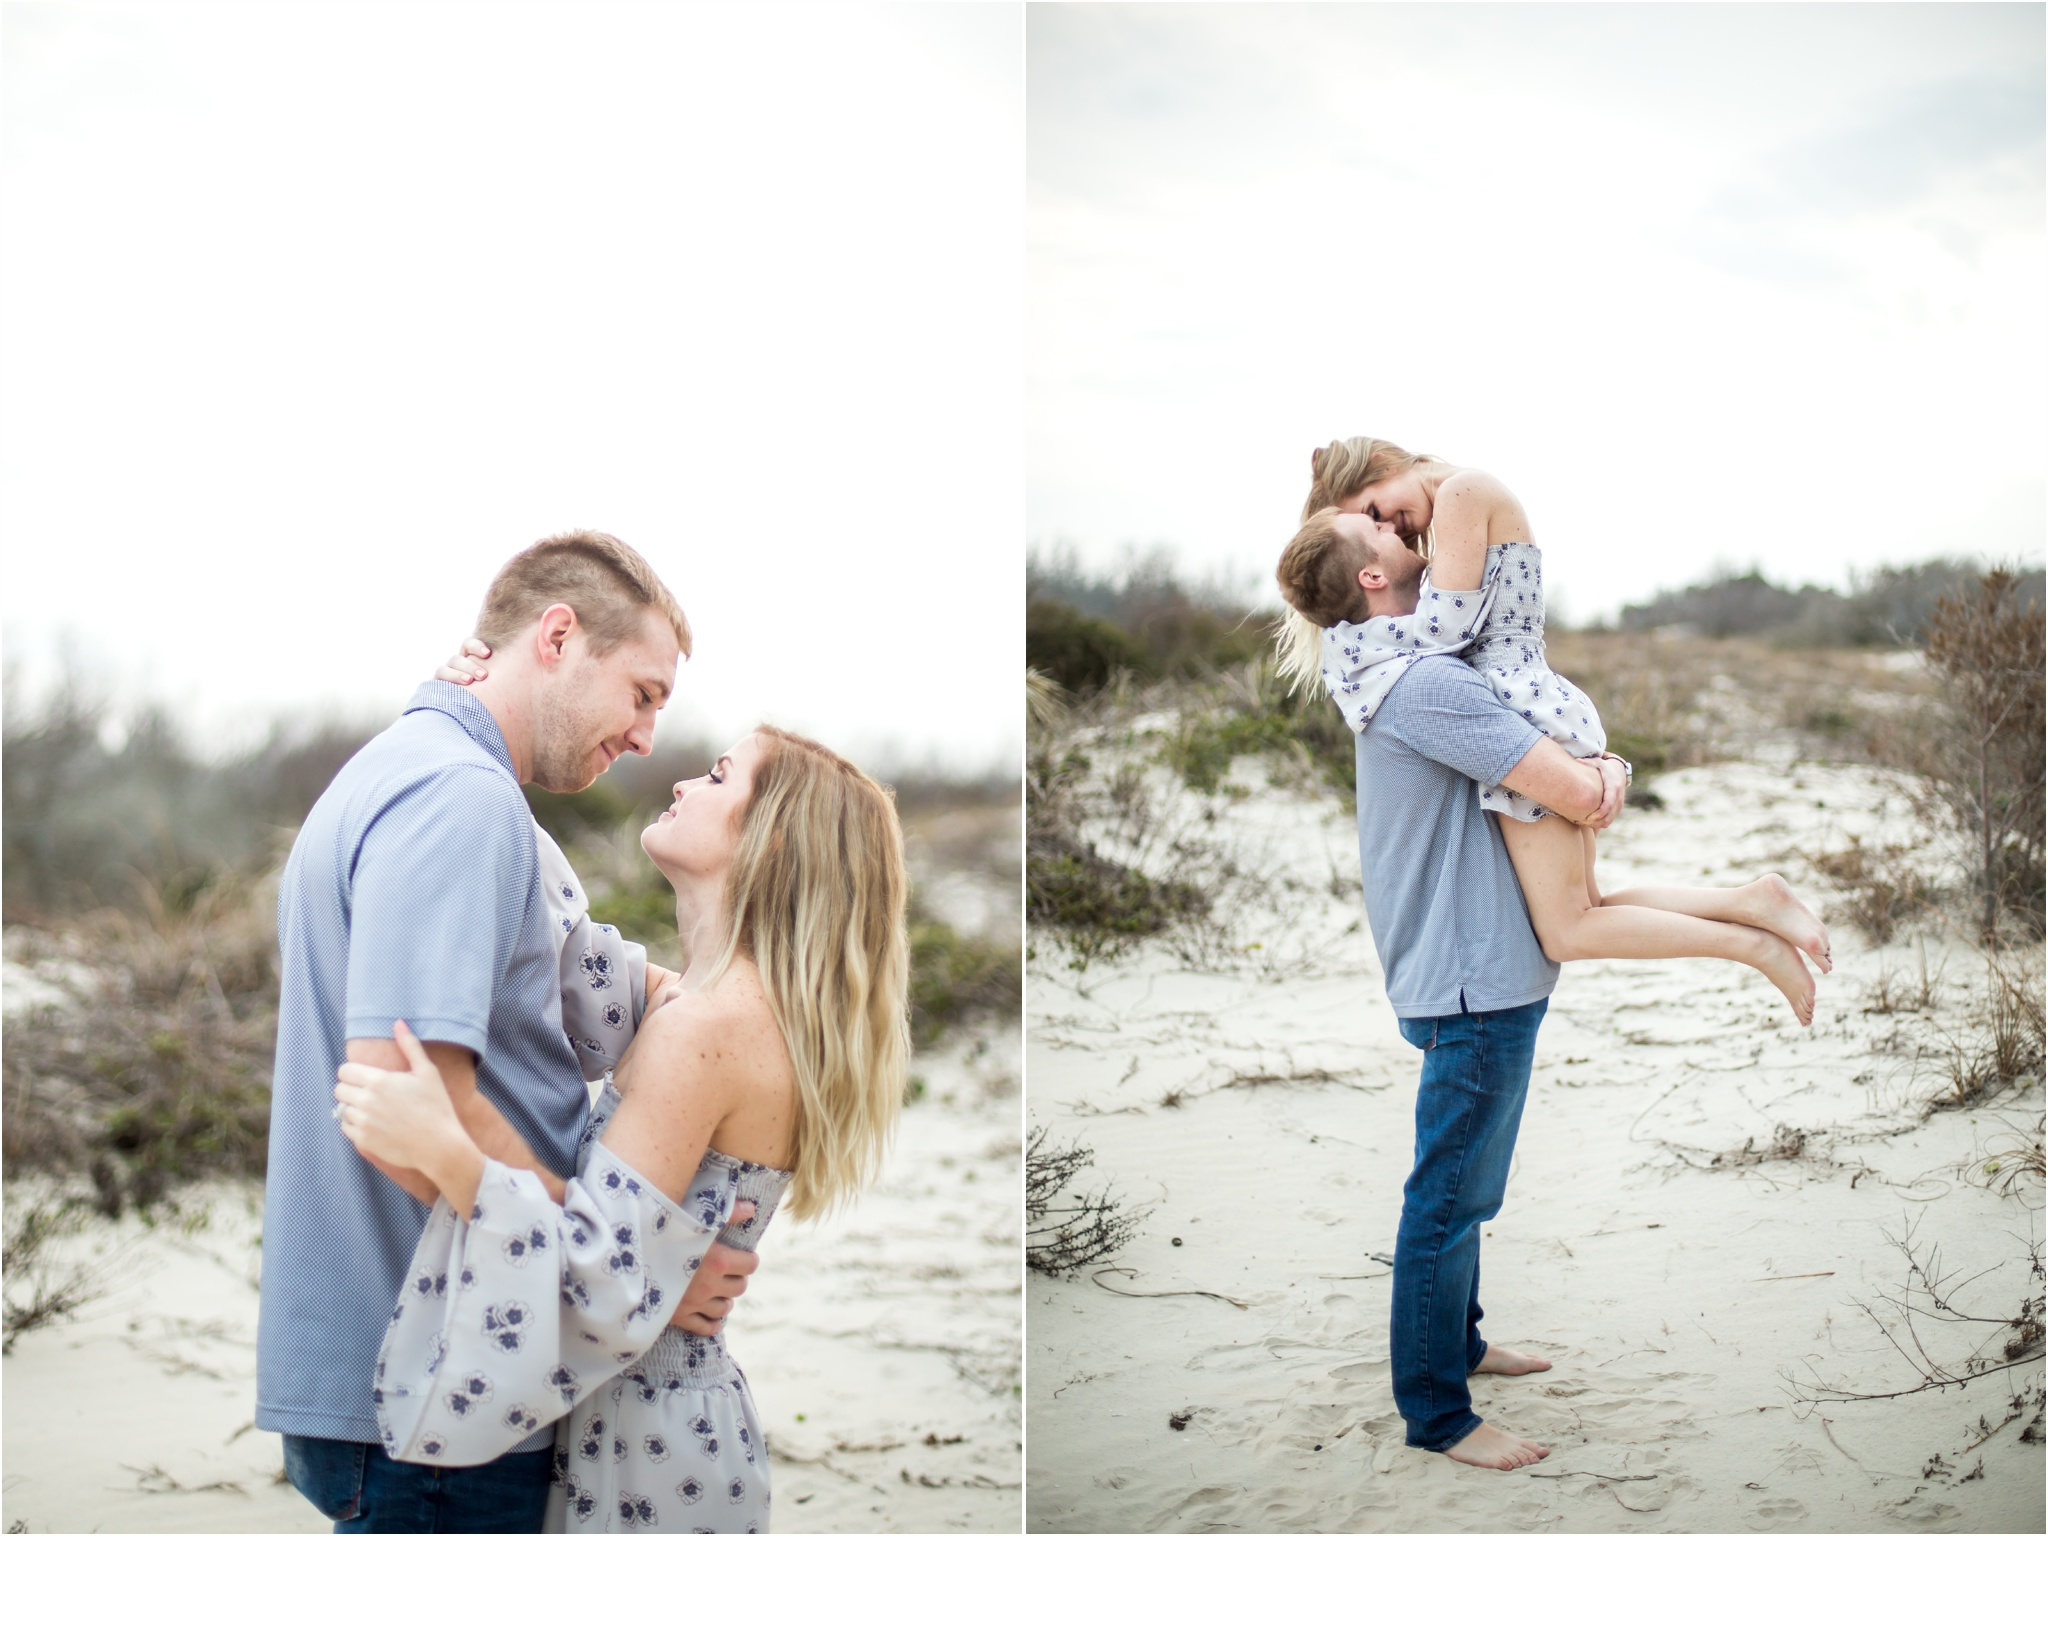 Rainey_Gregg_Photography_St._Simons_Island_Georgia_California_Wedding_Portrait_Photography_0617.jpg